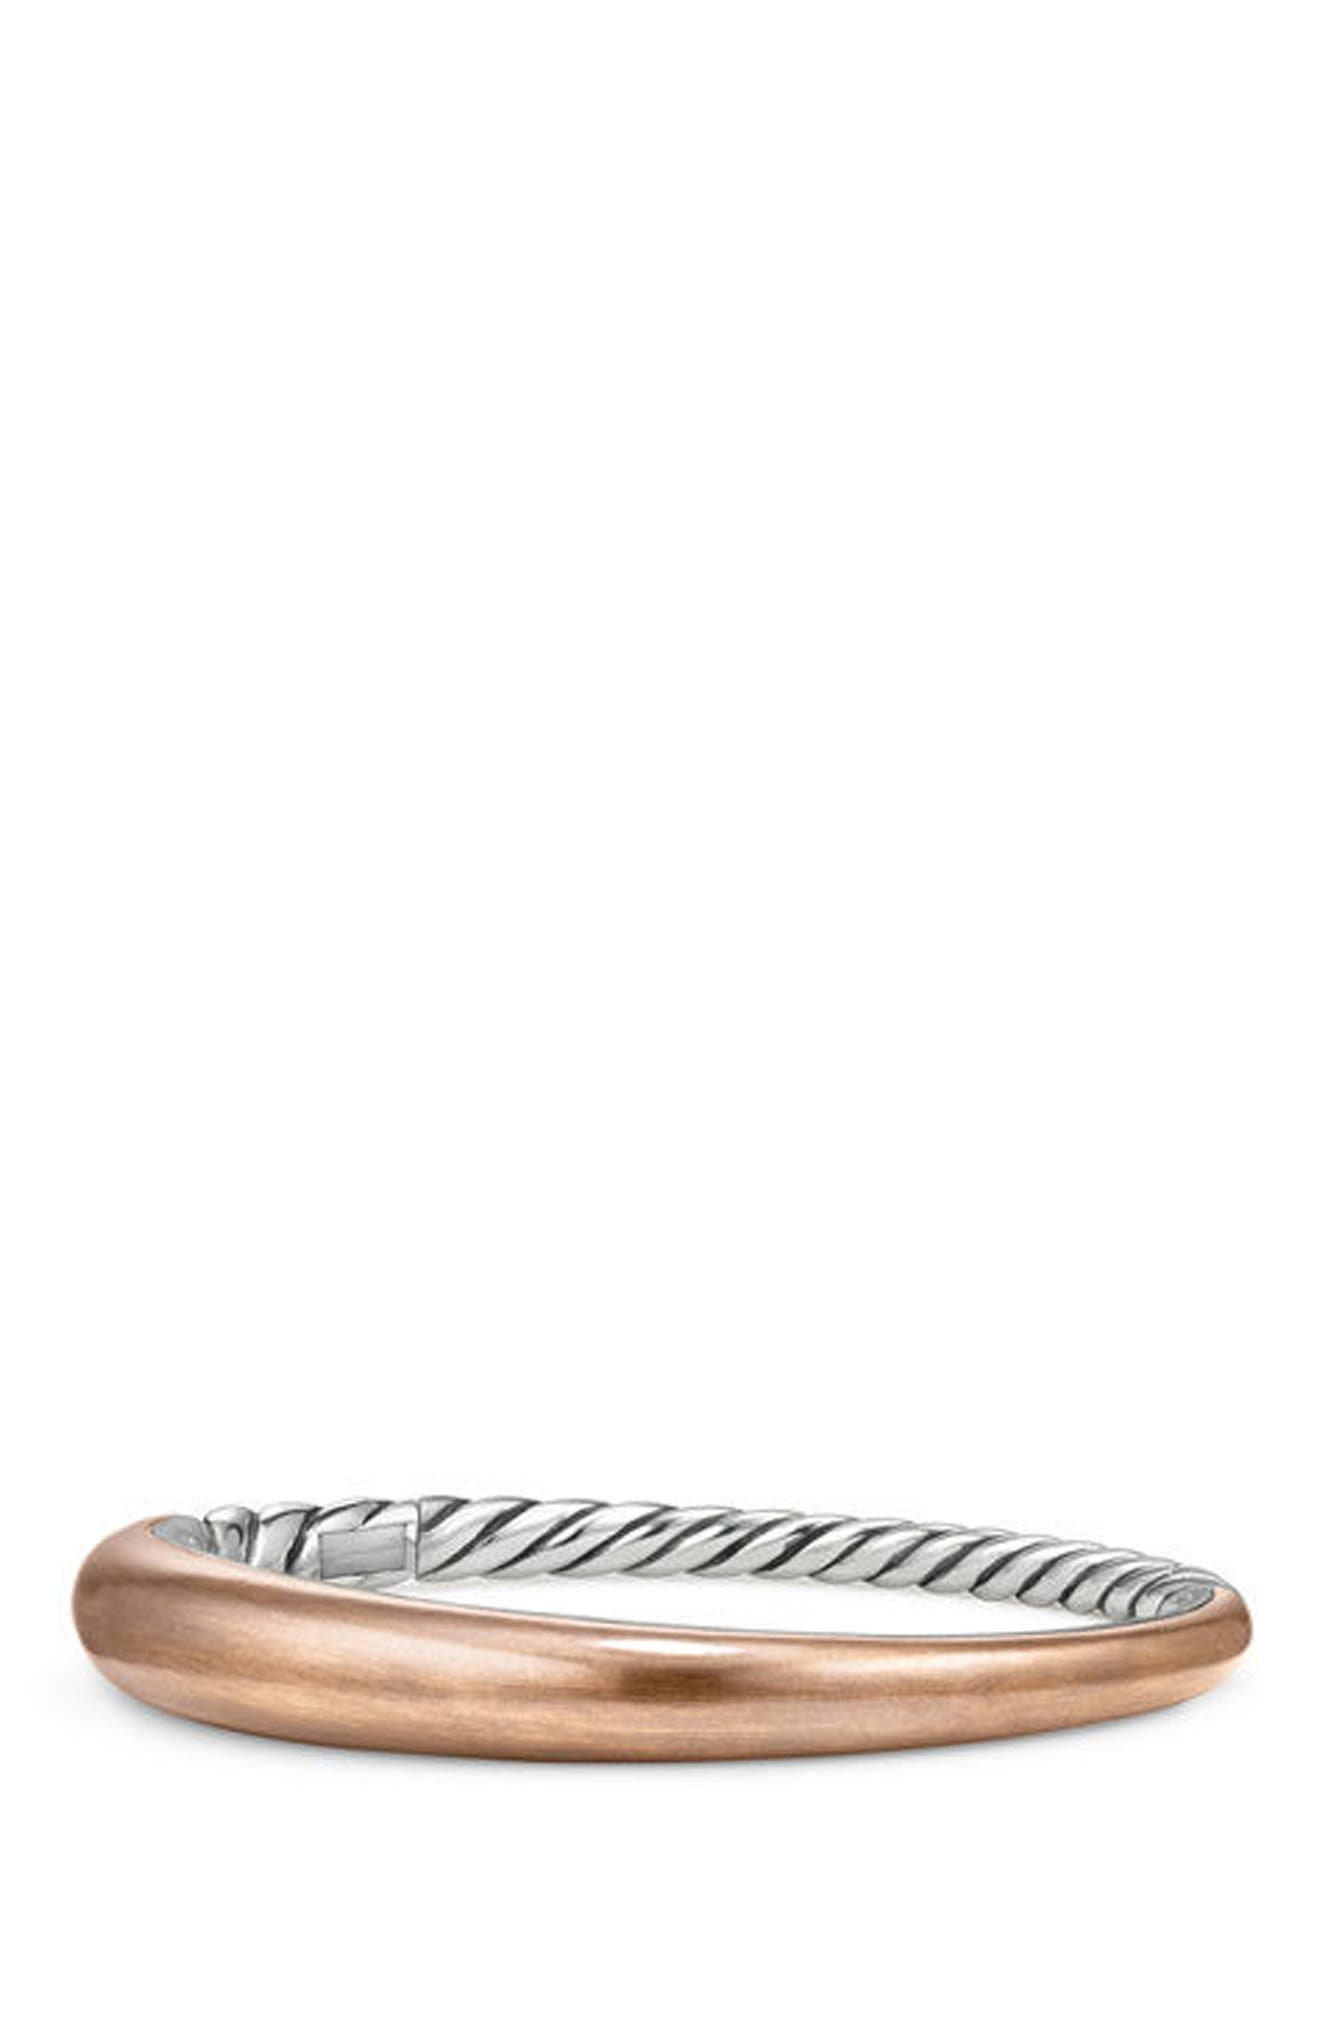 Alternate Image 1 Selected - David Yurman Pure Form Mixed Metal Smooth Bracelet with Diamonds, Bronze and Silver, 9.5mm